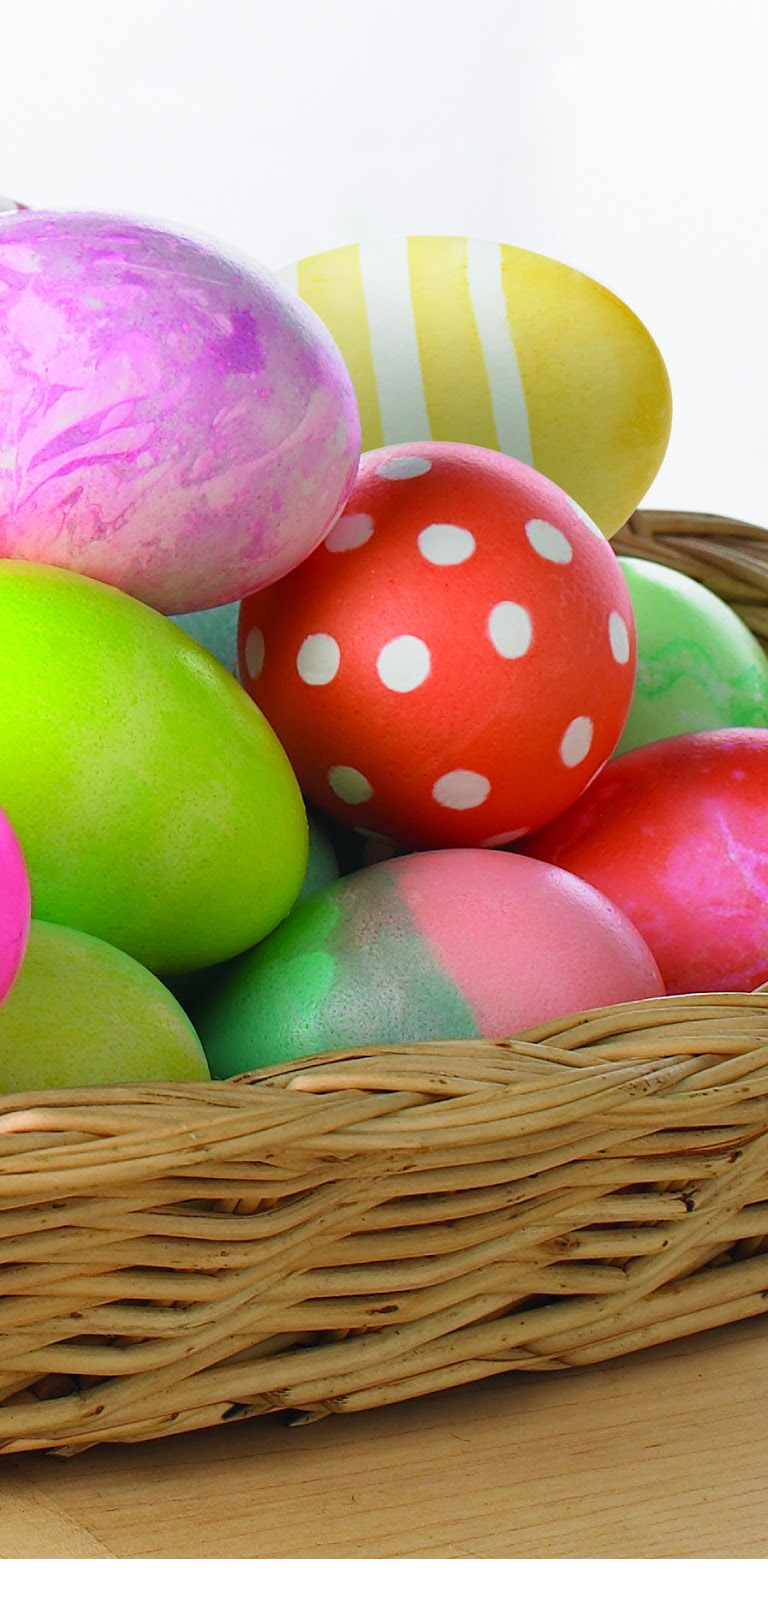 Happy Easter 2013   Download Easter Eggs iPhone 5 HD 768x1600